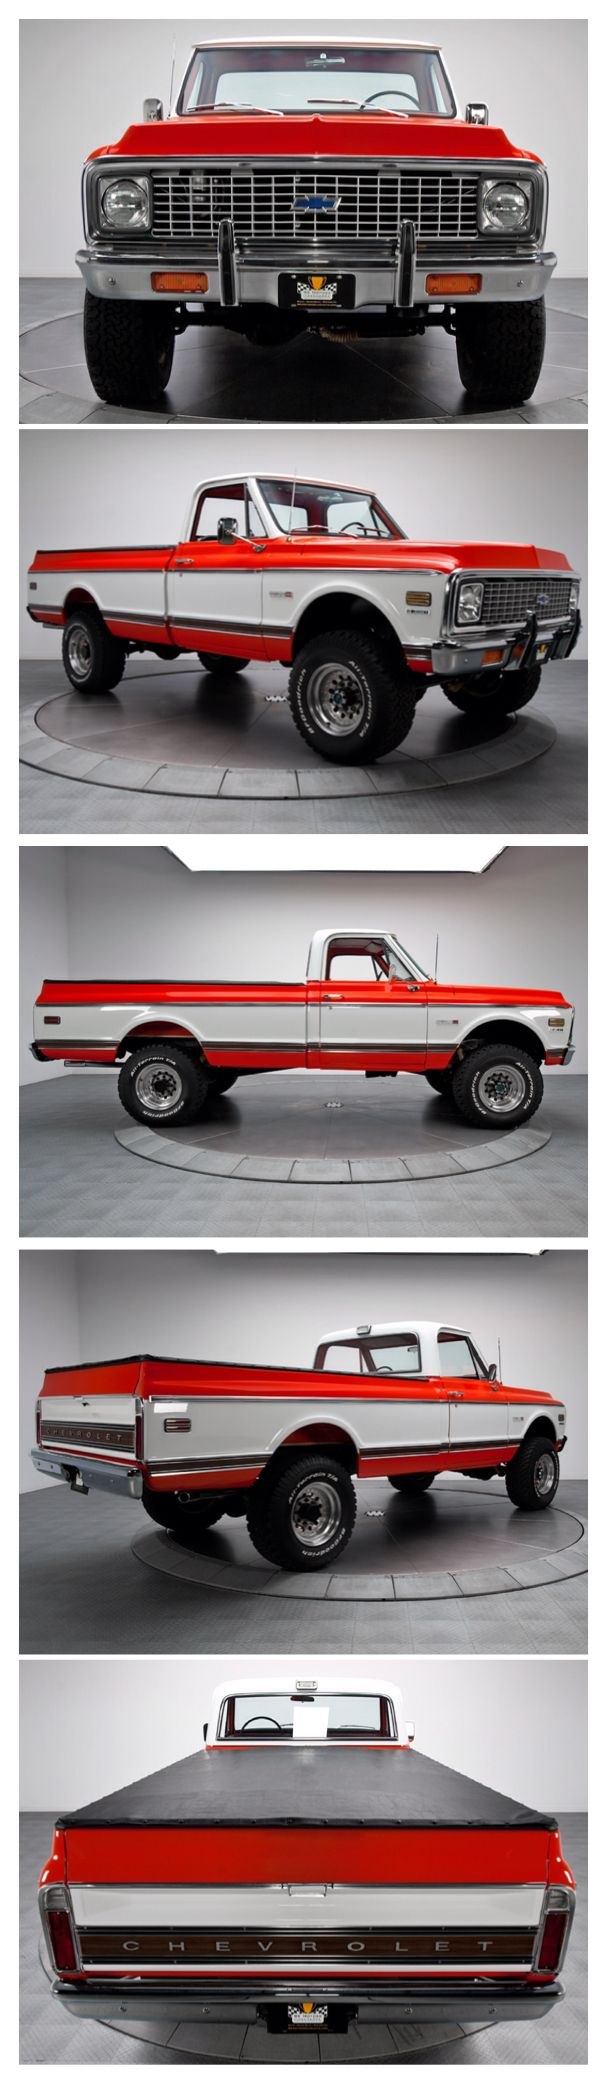 1972 Chevy Pickup K-20- I appreciate the full spin.